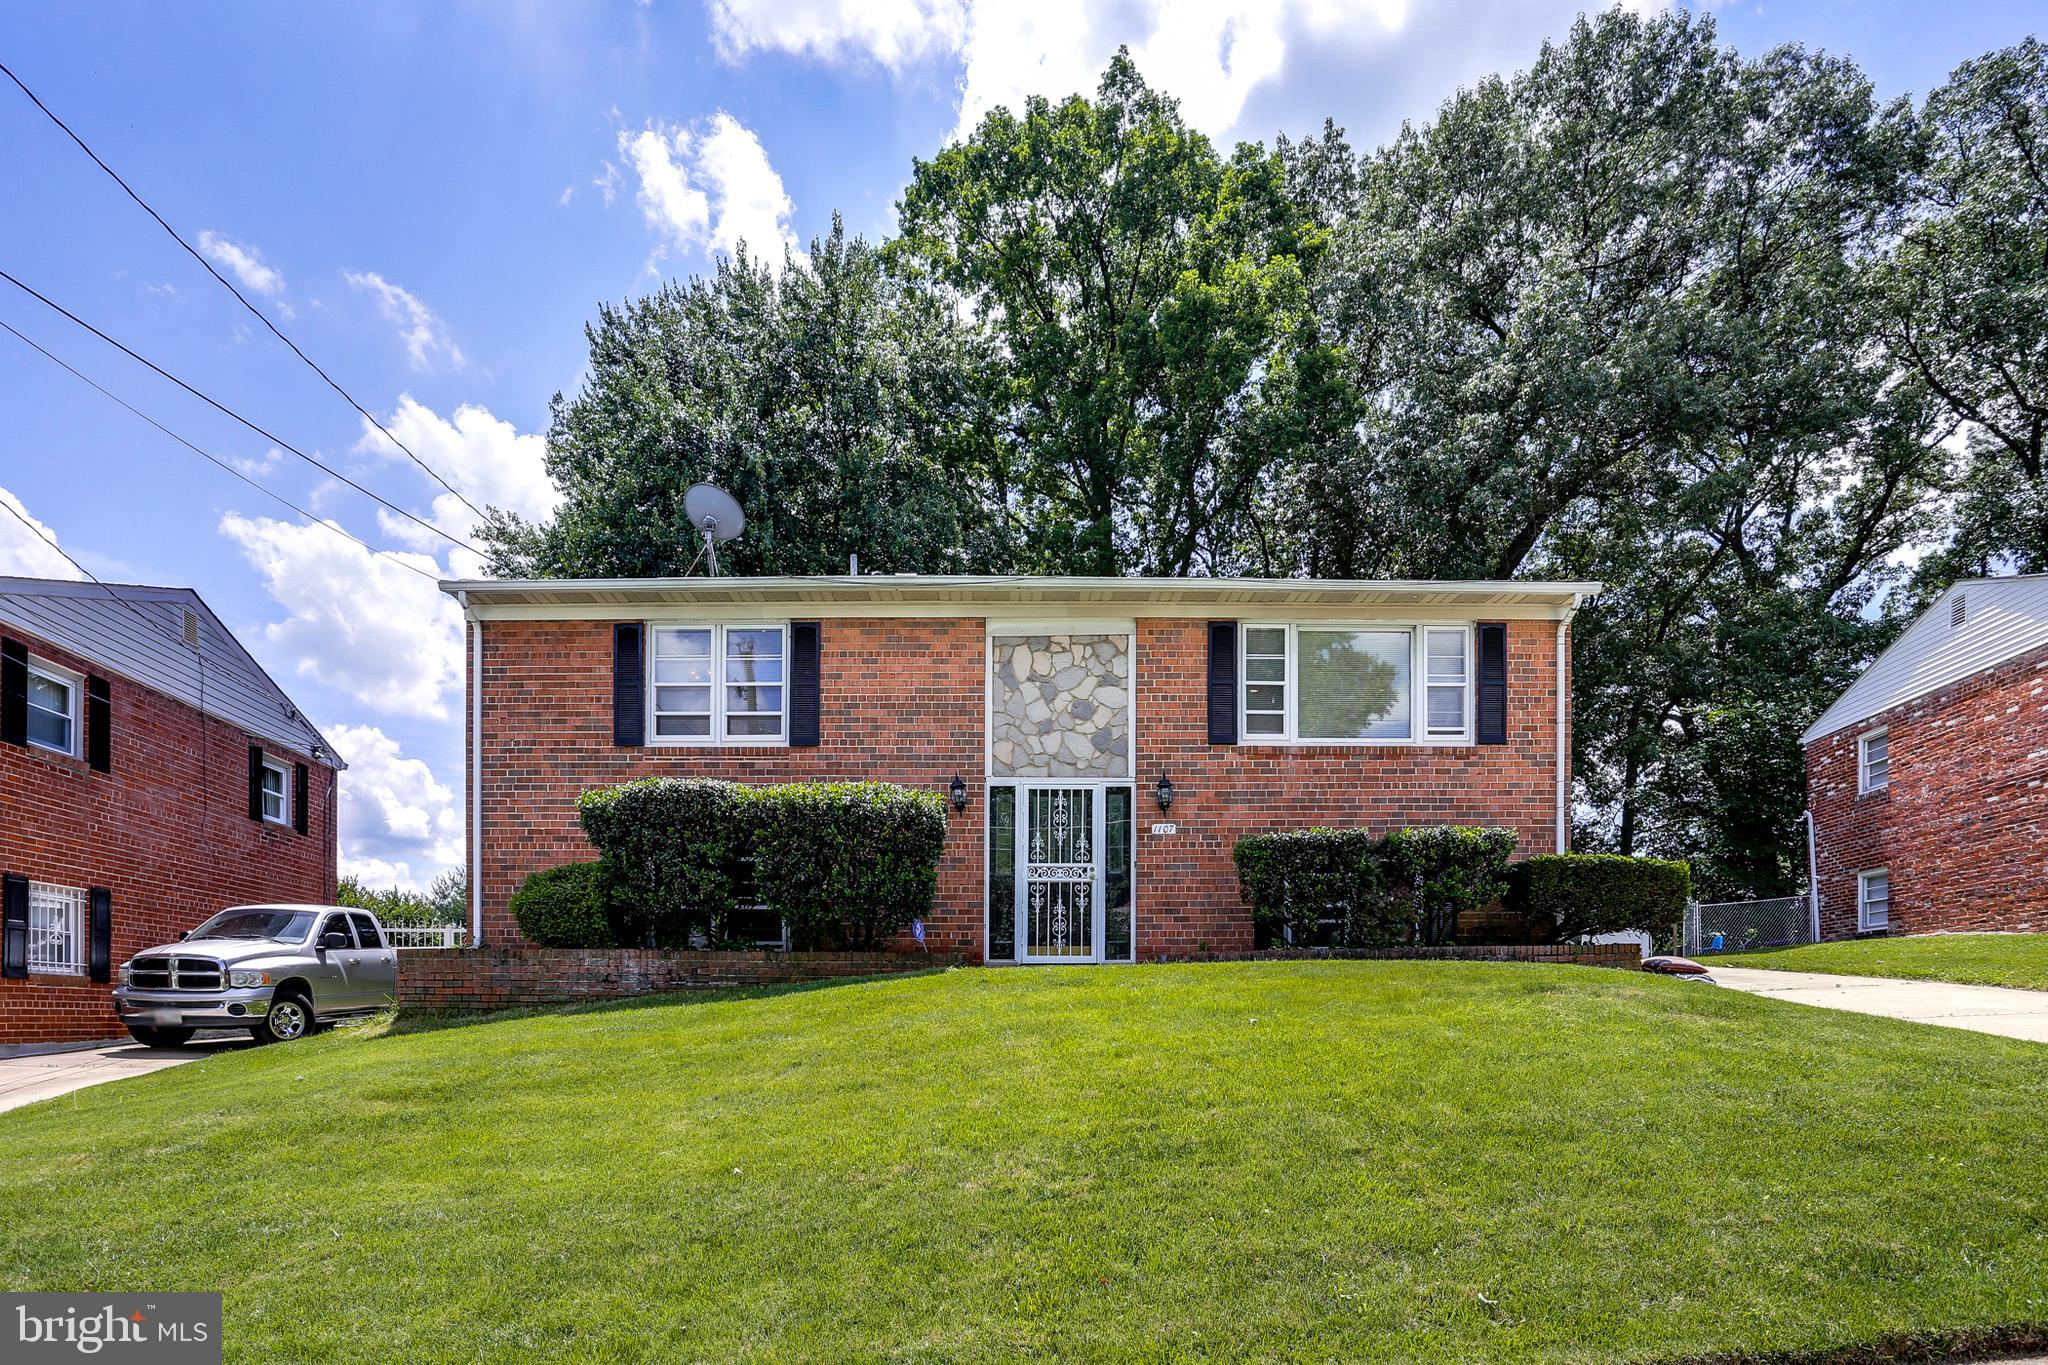 1107 WATERFORD DRIVE, DISTRICT HEIGHTS, MD 20747